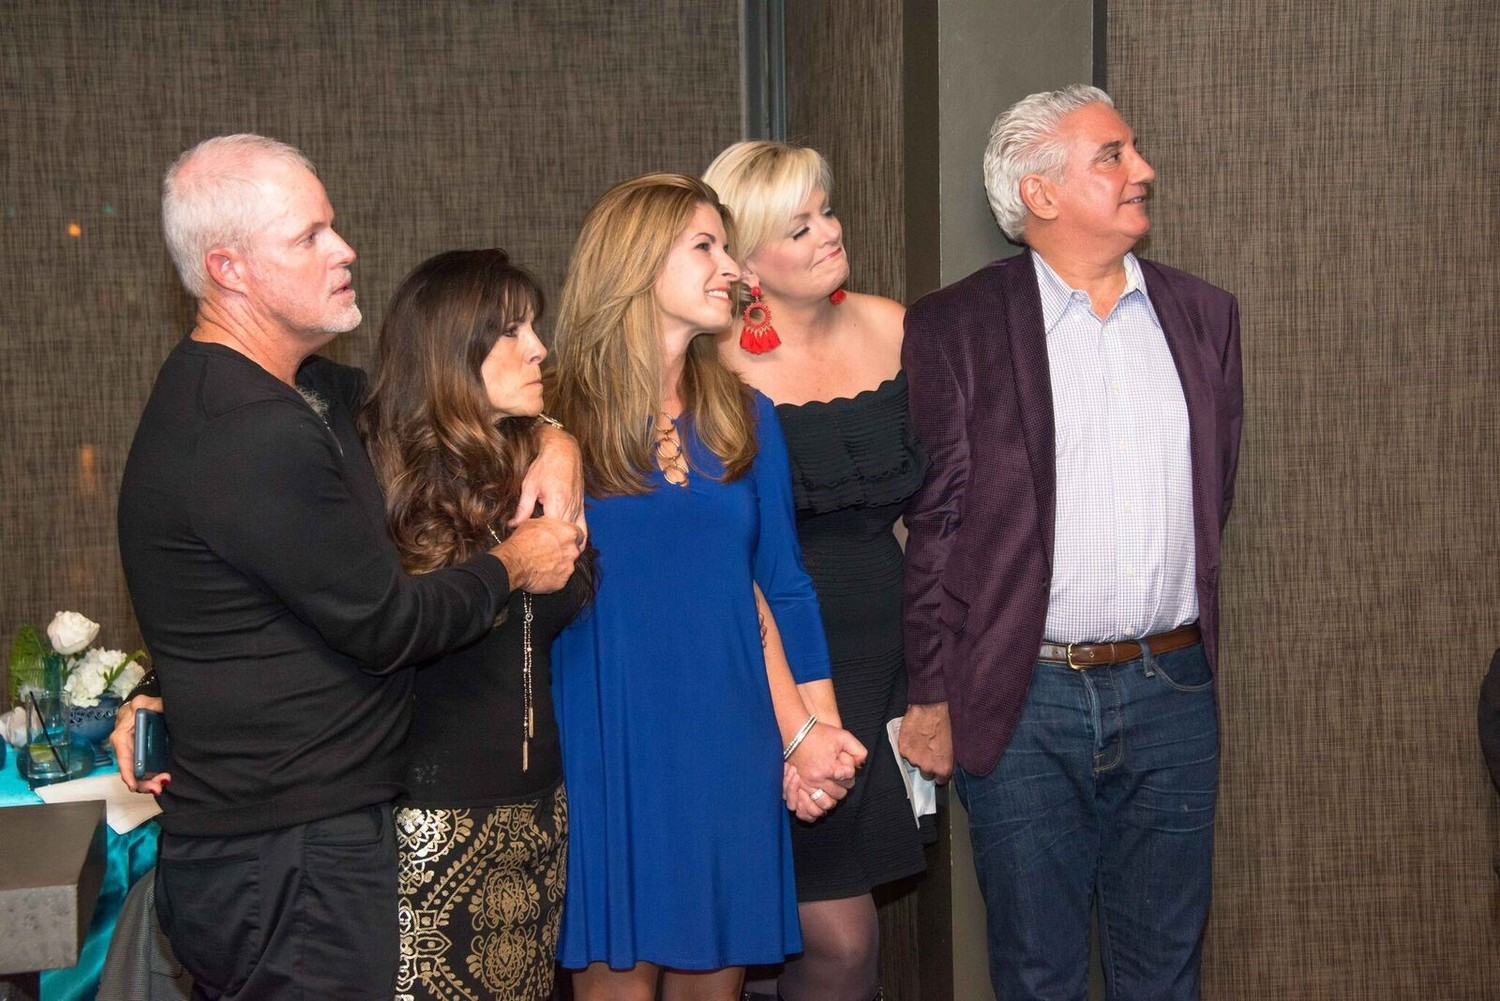 Alan Henderson, Lori Henderson, Lisa Amato, Nikki Kimbleton and Cary Hart gather at the Nov. 26 wine dinner.